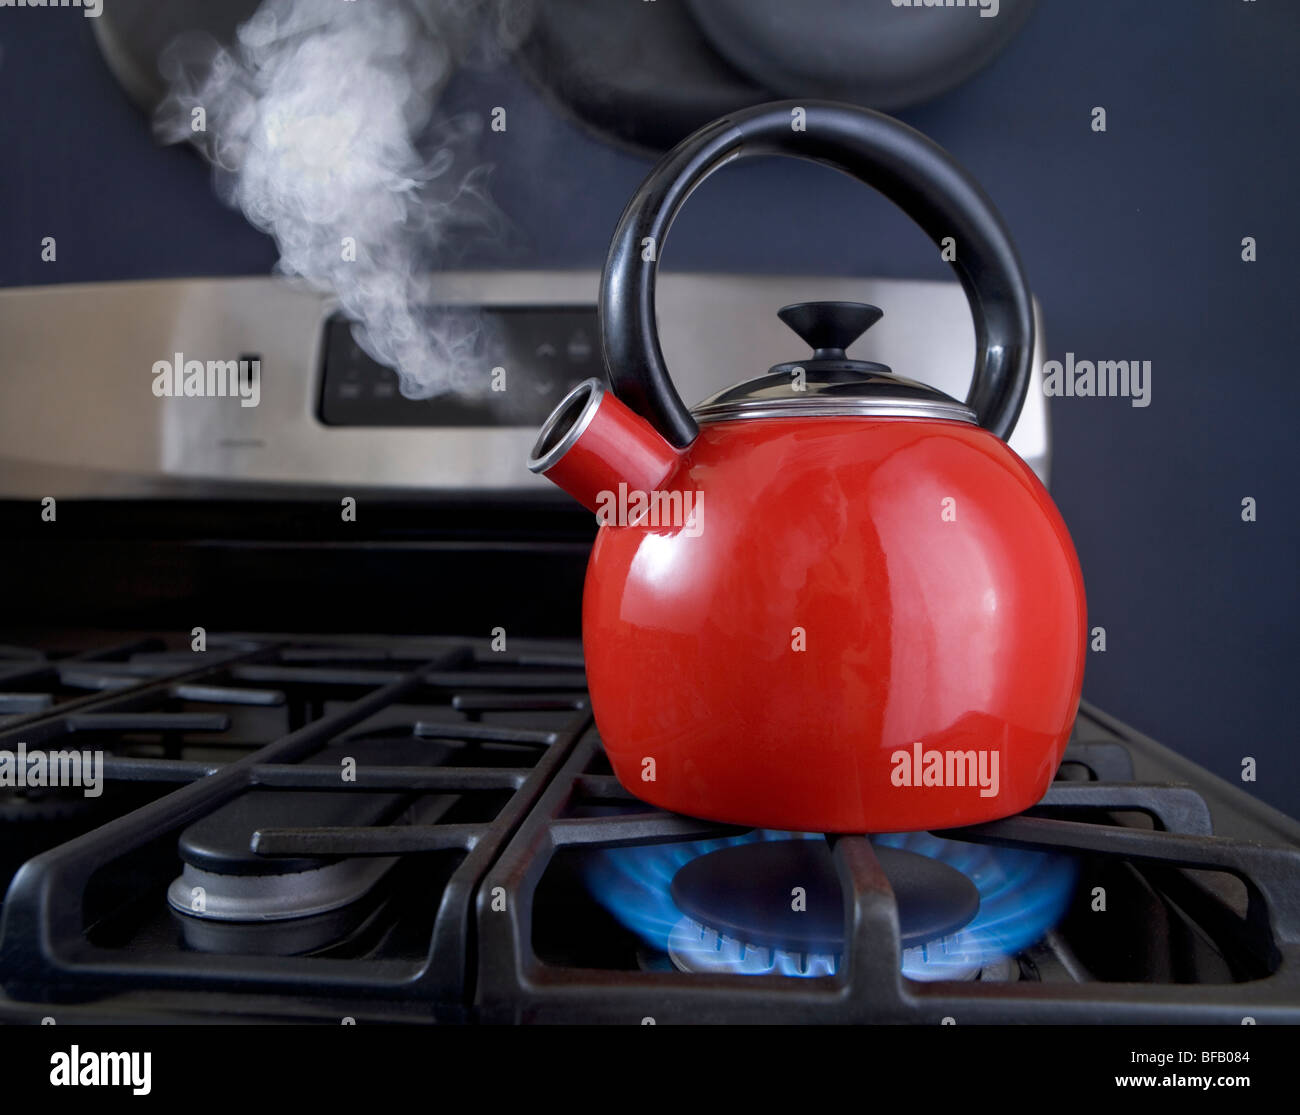 A red teapot is on the boil and steam is pouring out of the spout. - Stock Image